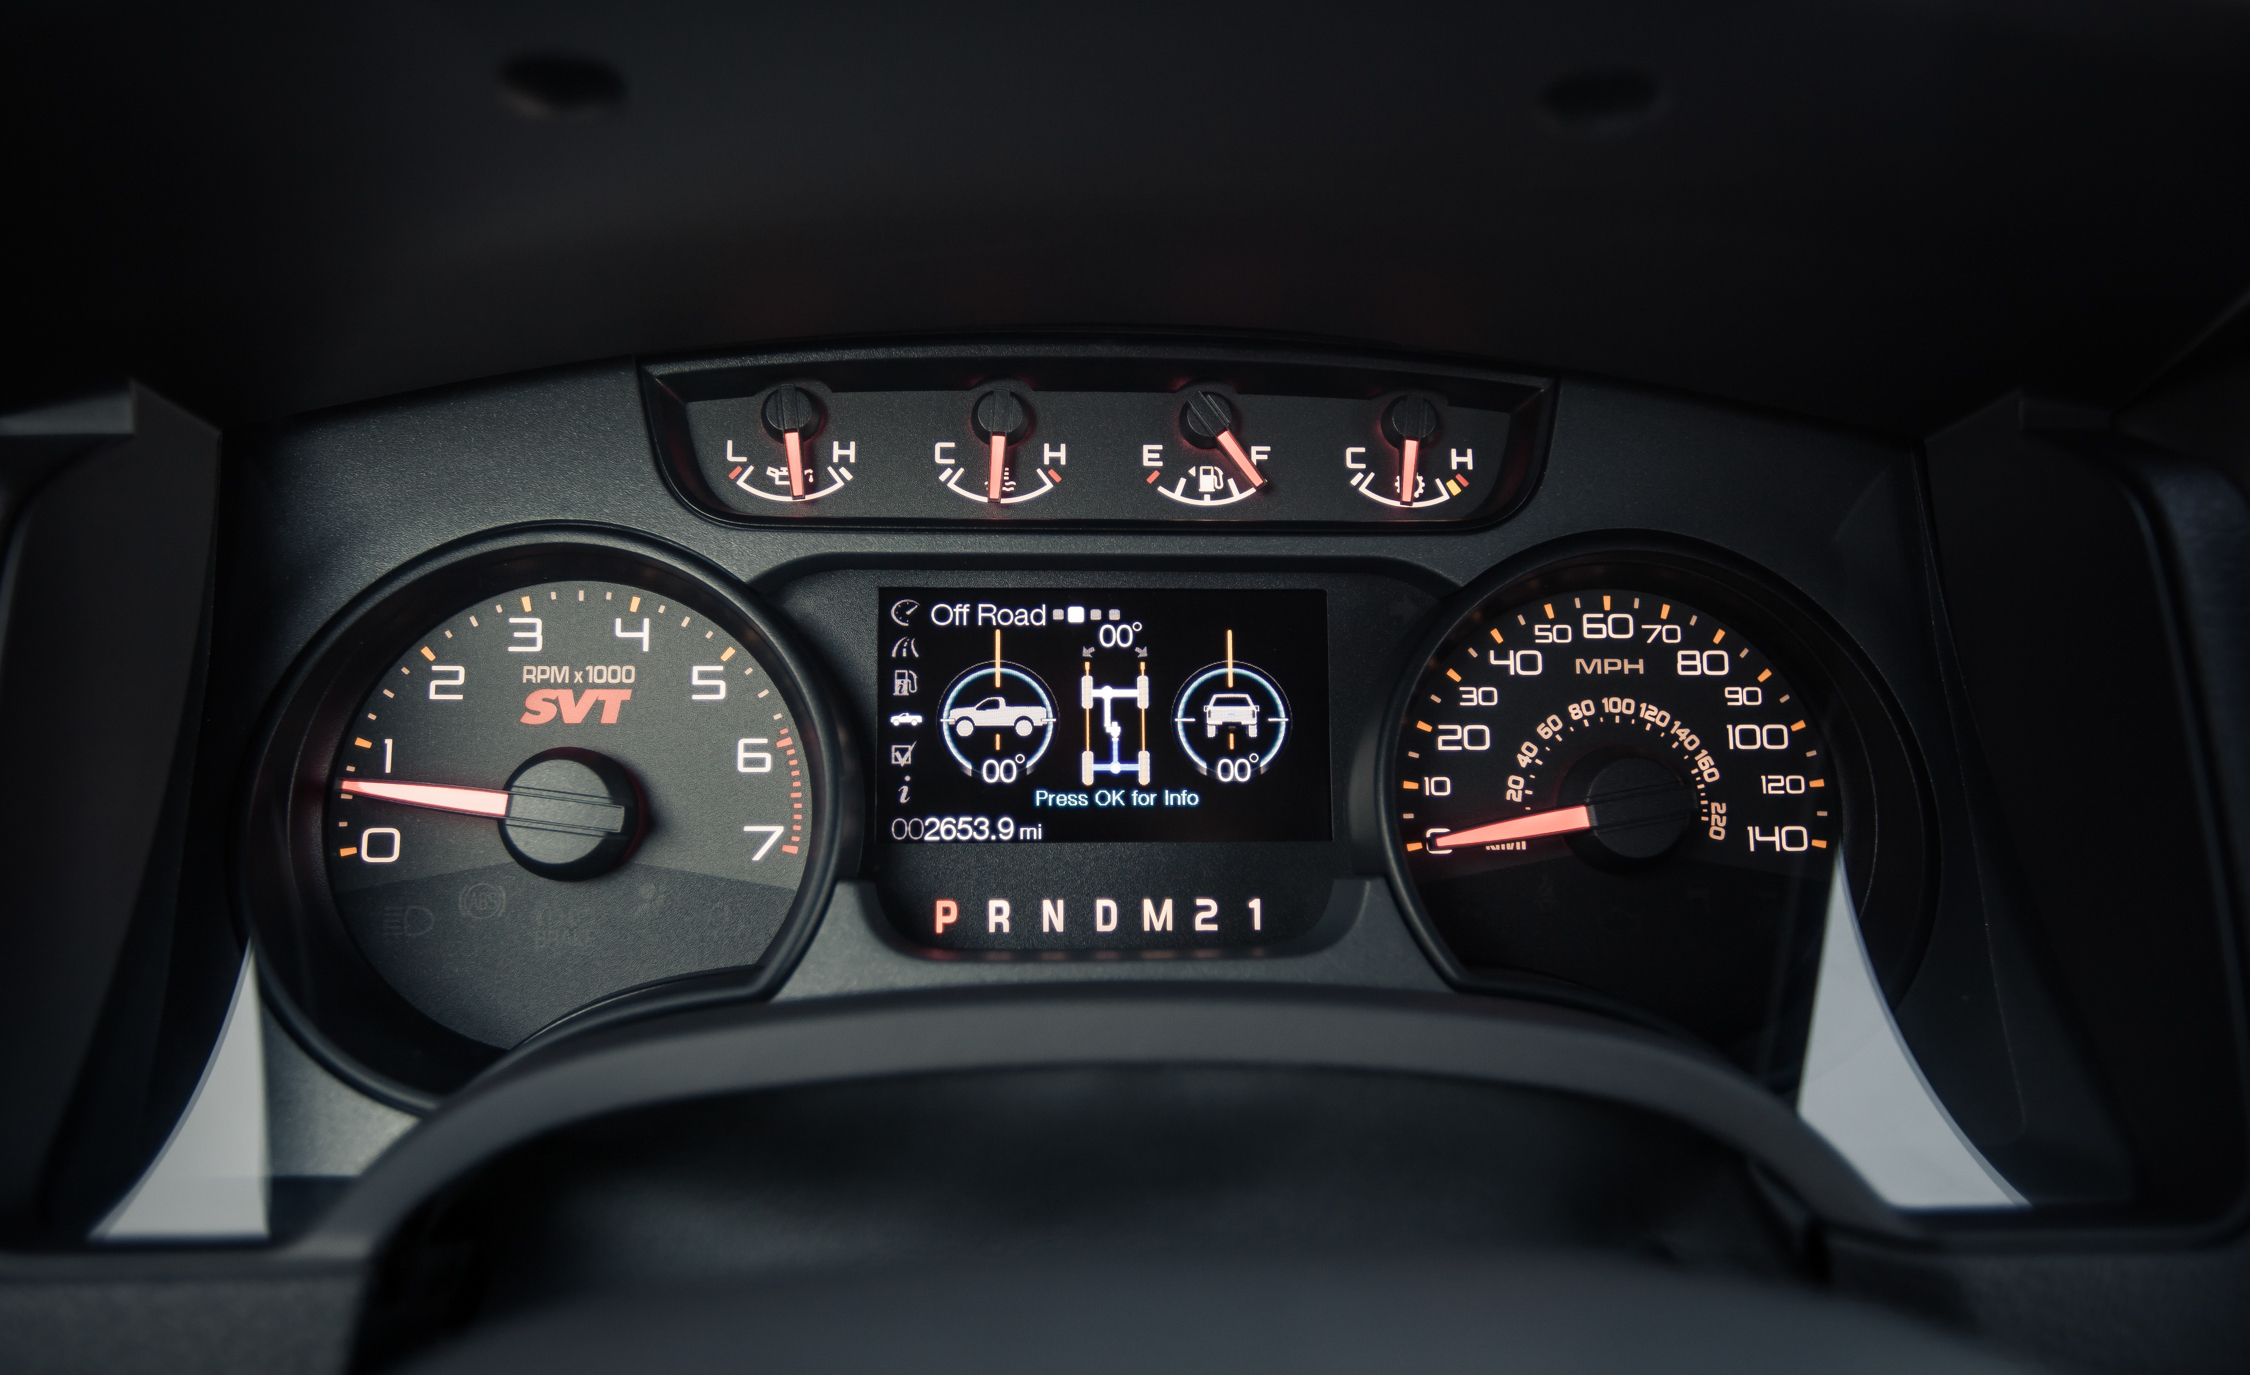 2013 Ford F 150 SVT Raptor SuperCab Interior View Instrument Cluster (Photo 27 of 39)